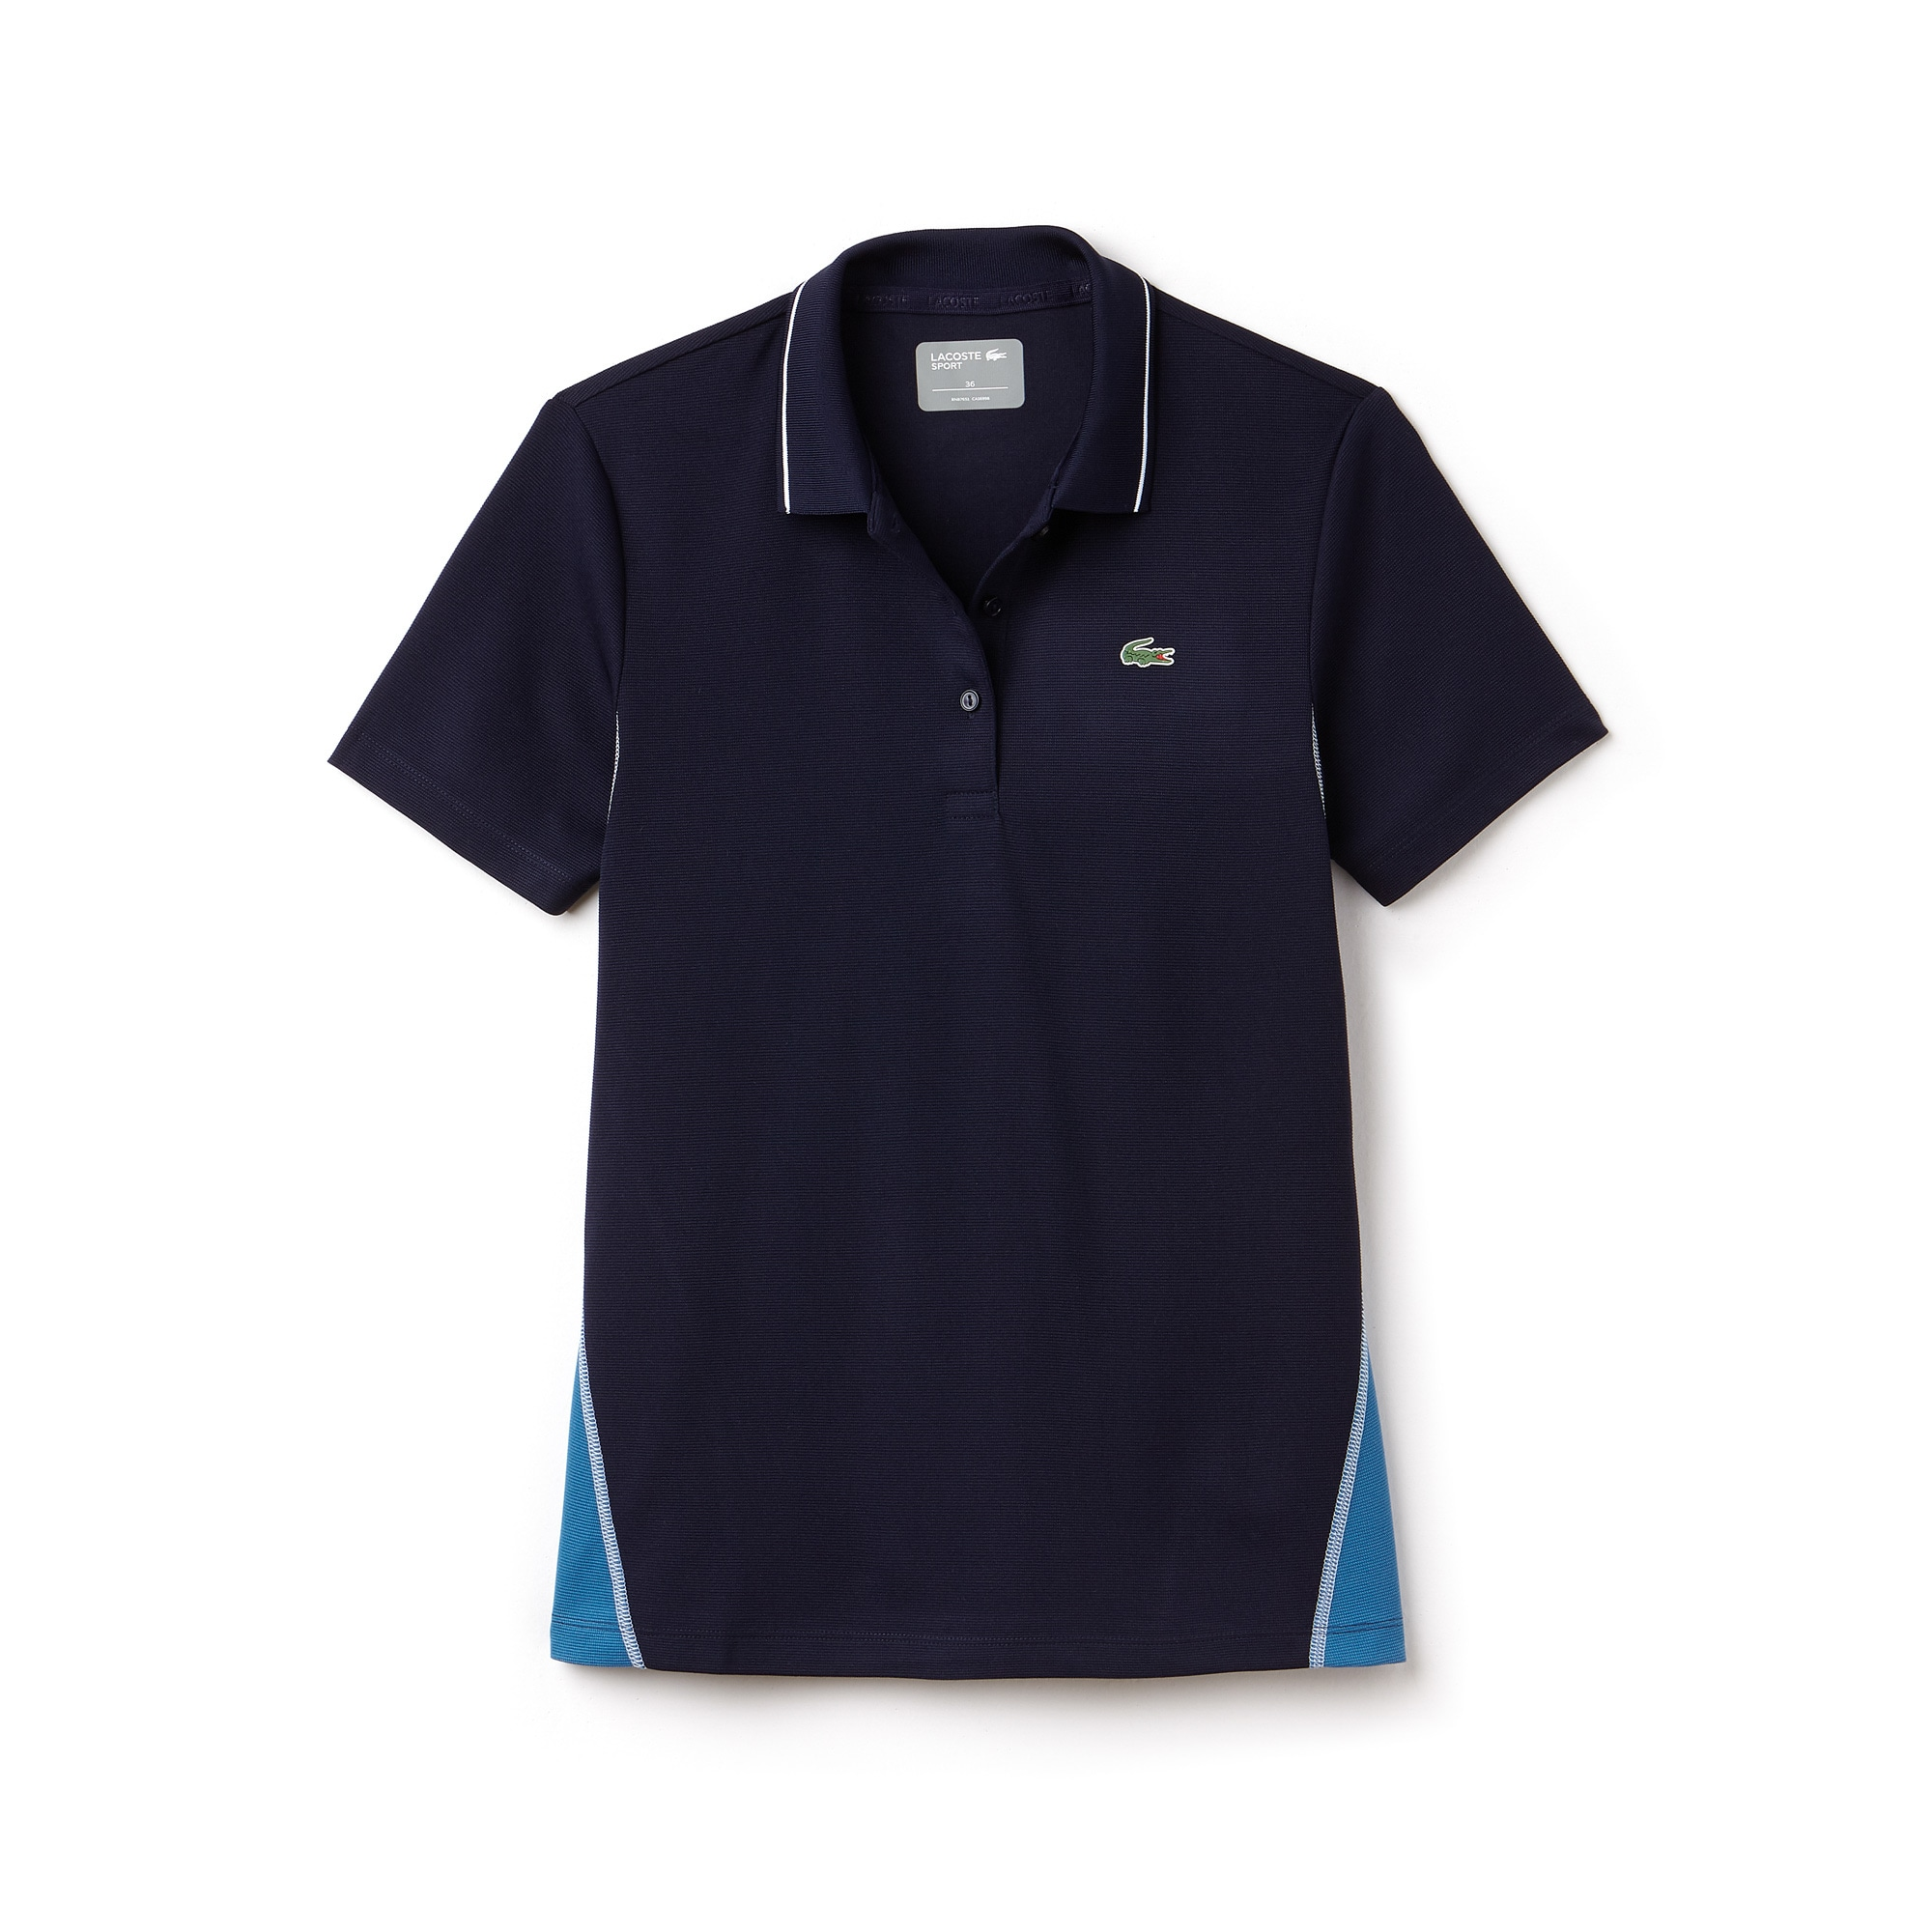 Women's Lacoste SPORT Technical Cotton Knit Golf Polo